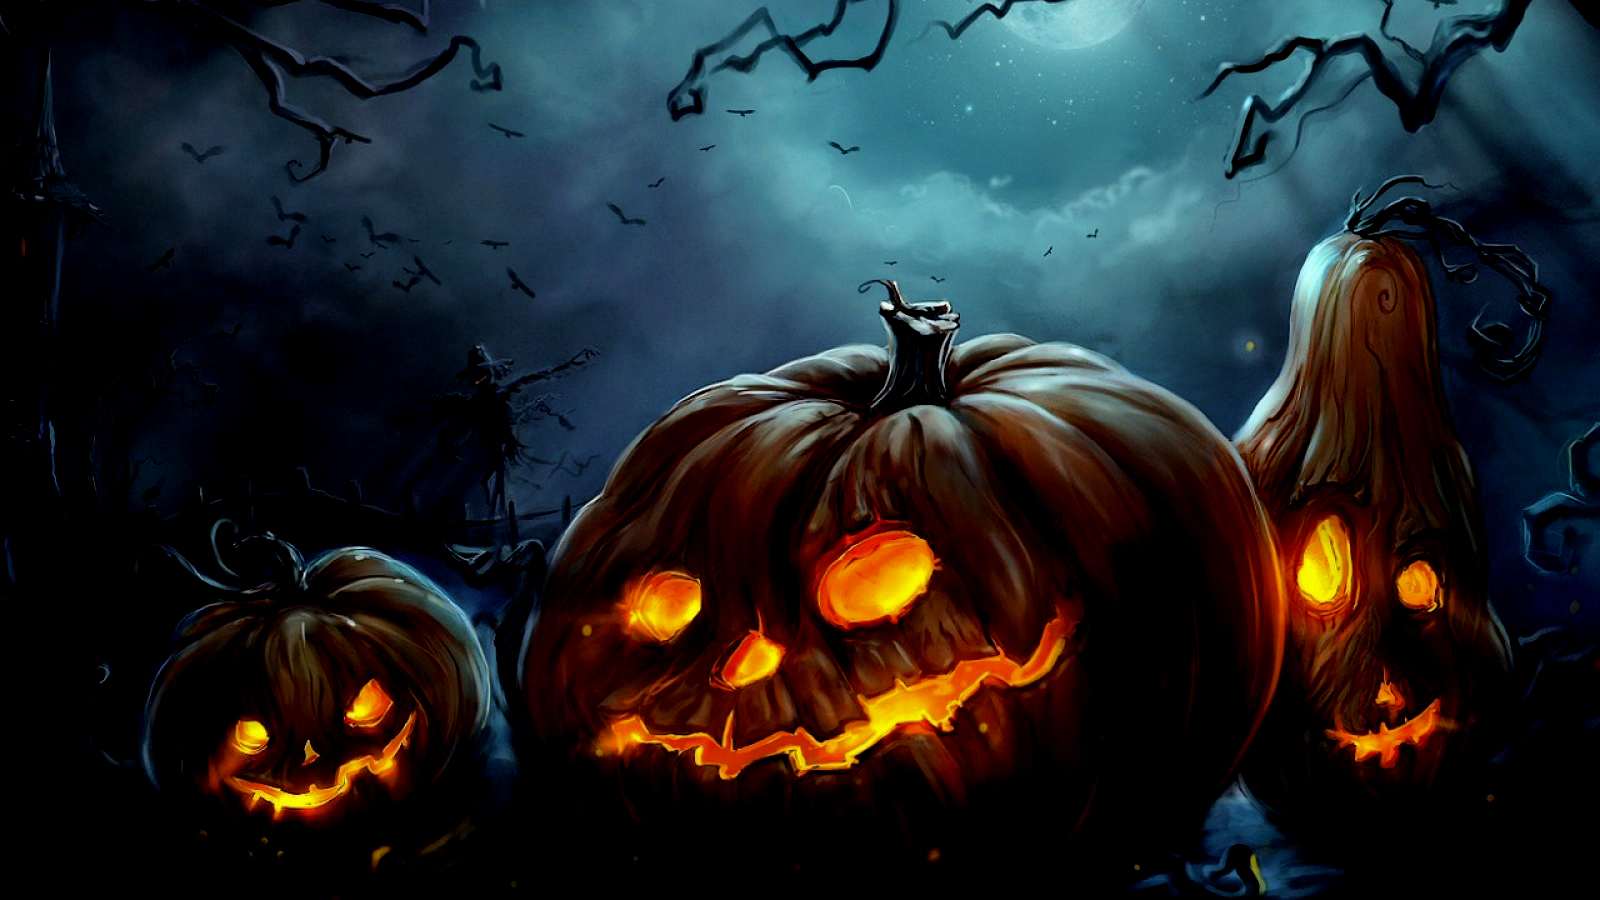 Pumpkin Halloween Wallpaper PC